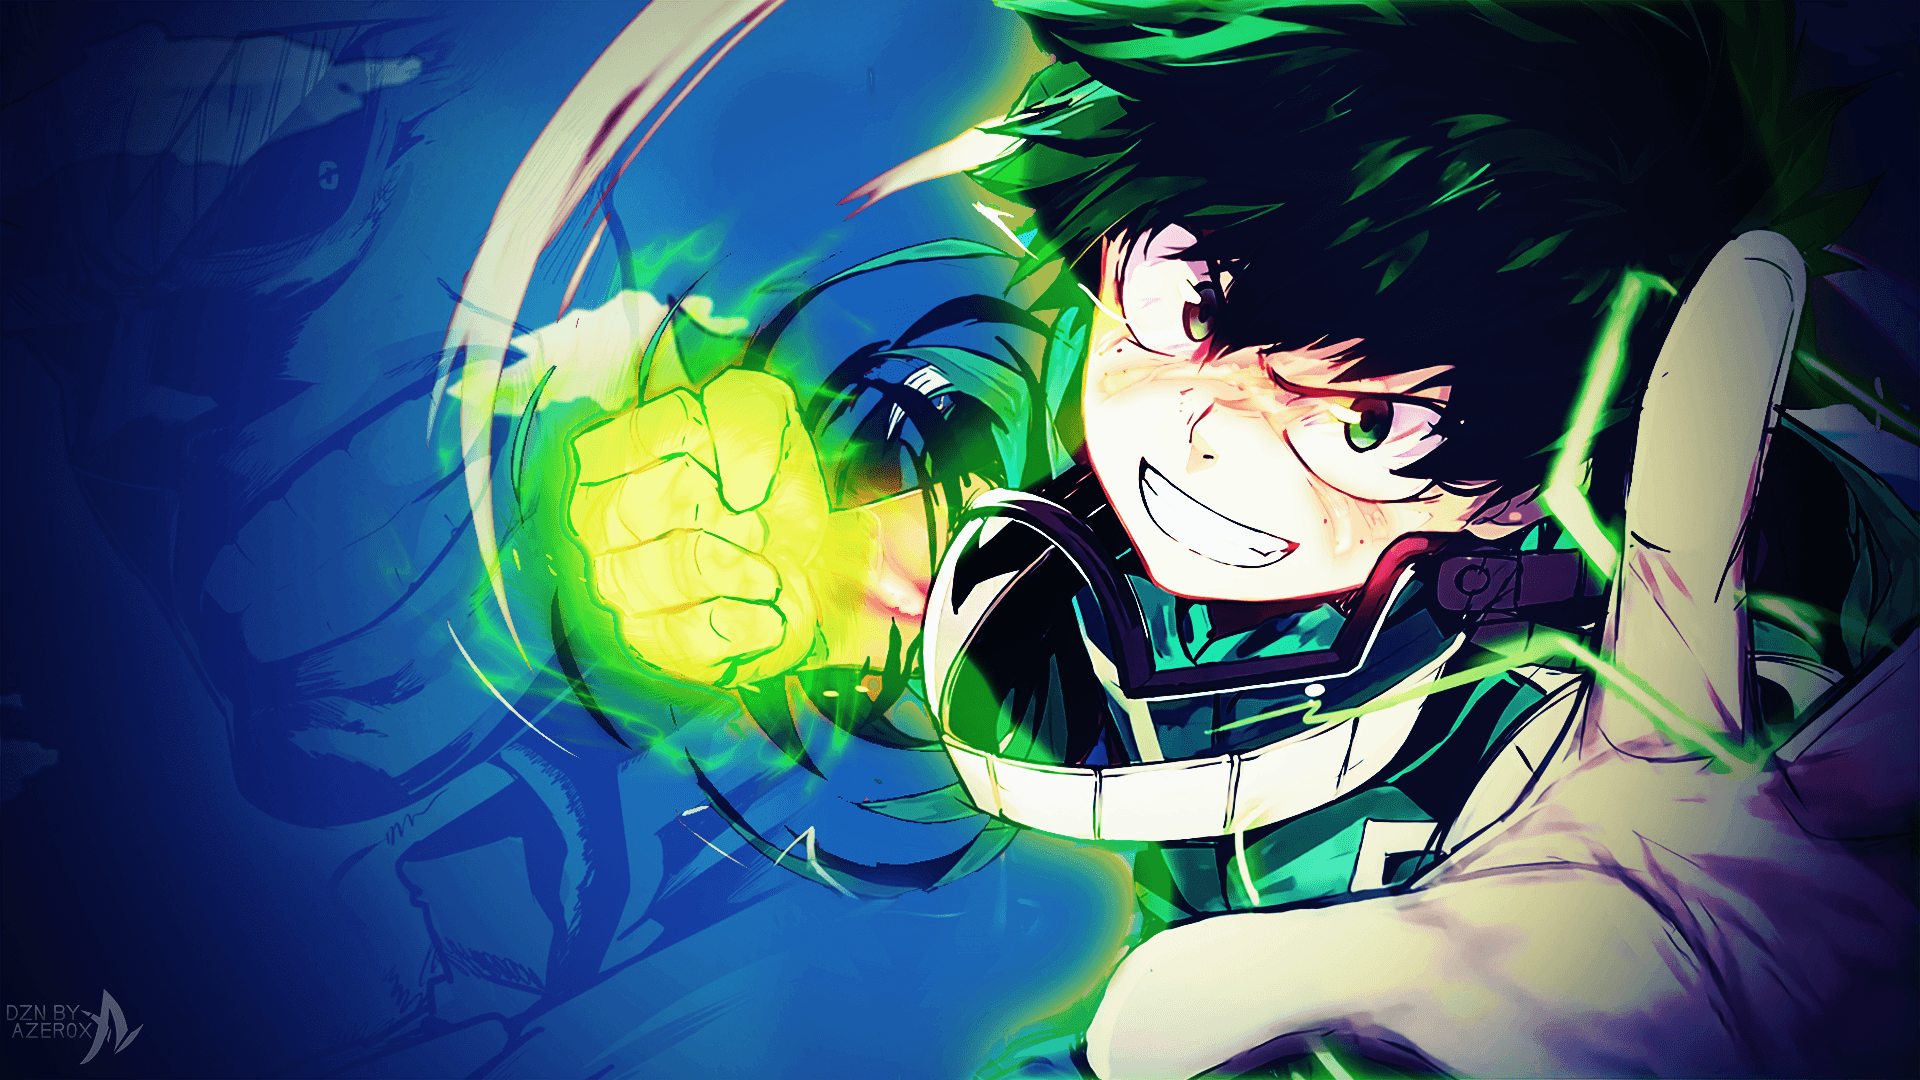 Izuku Midoriya Wallpapers Top Free Izuku Midoriya Backgrounds